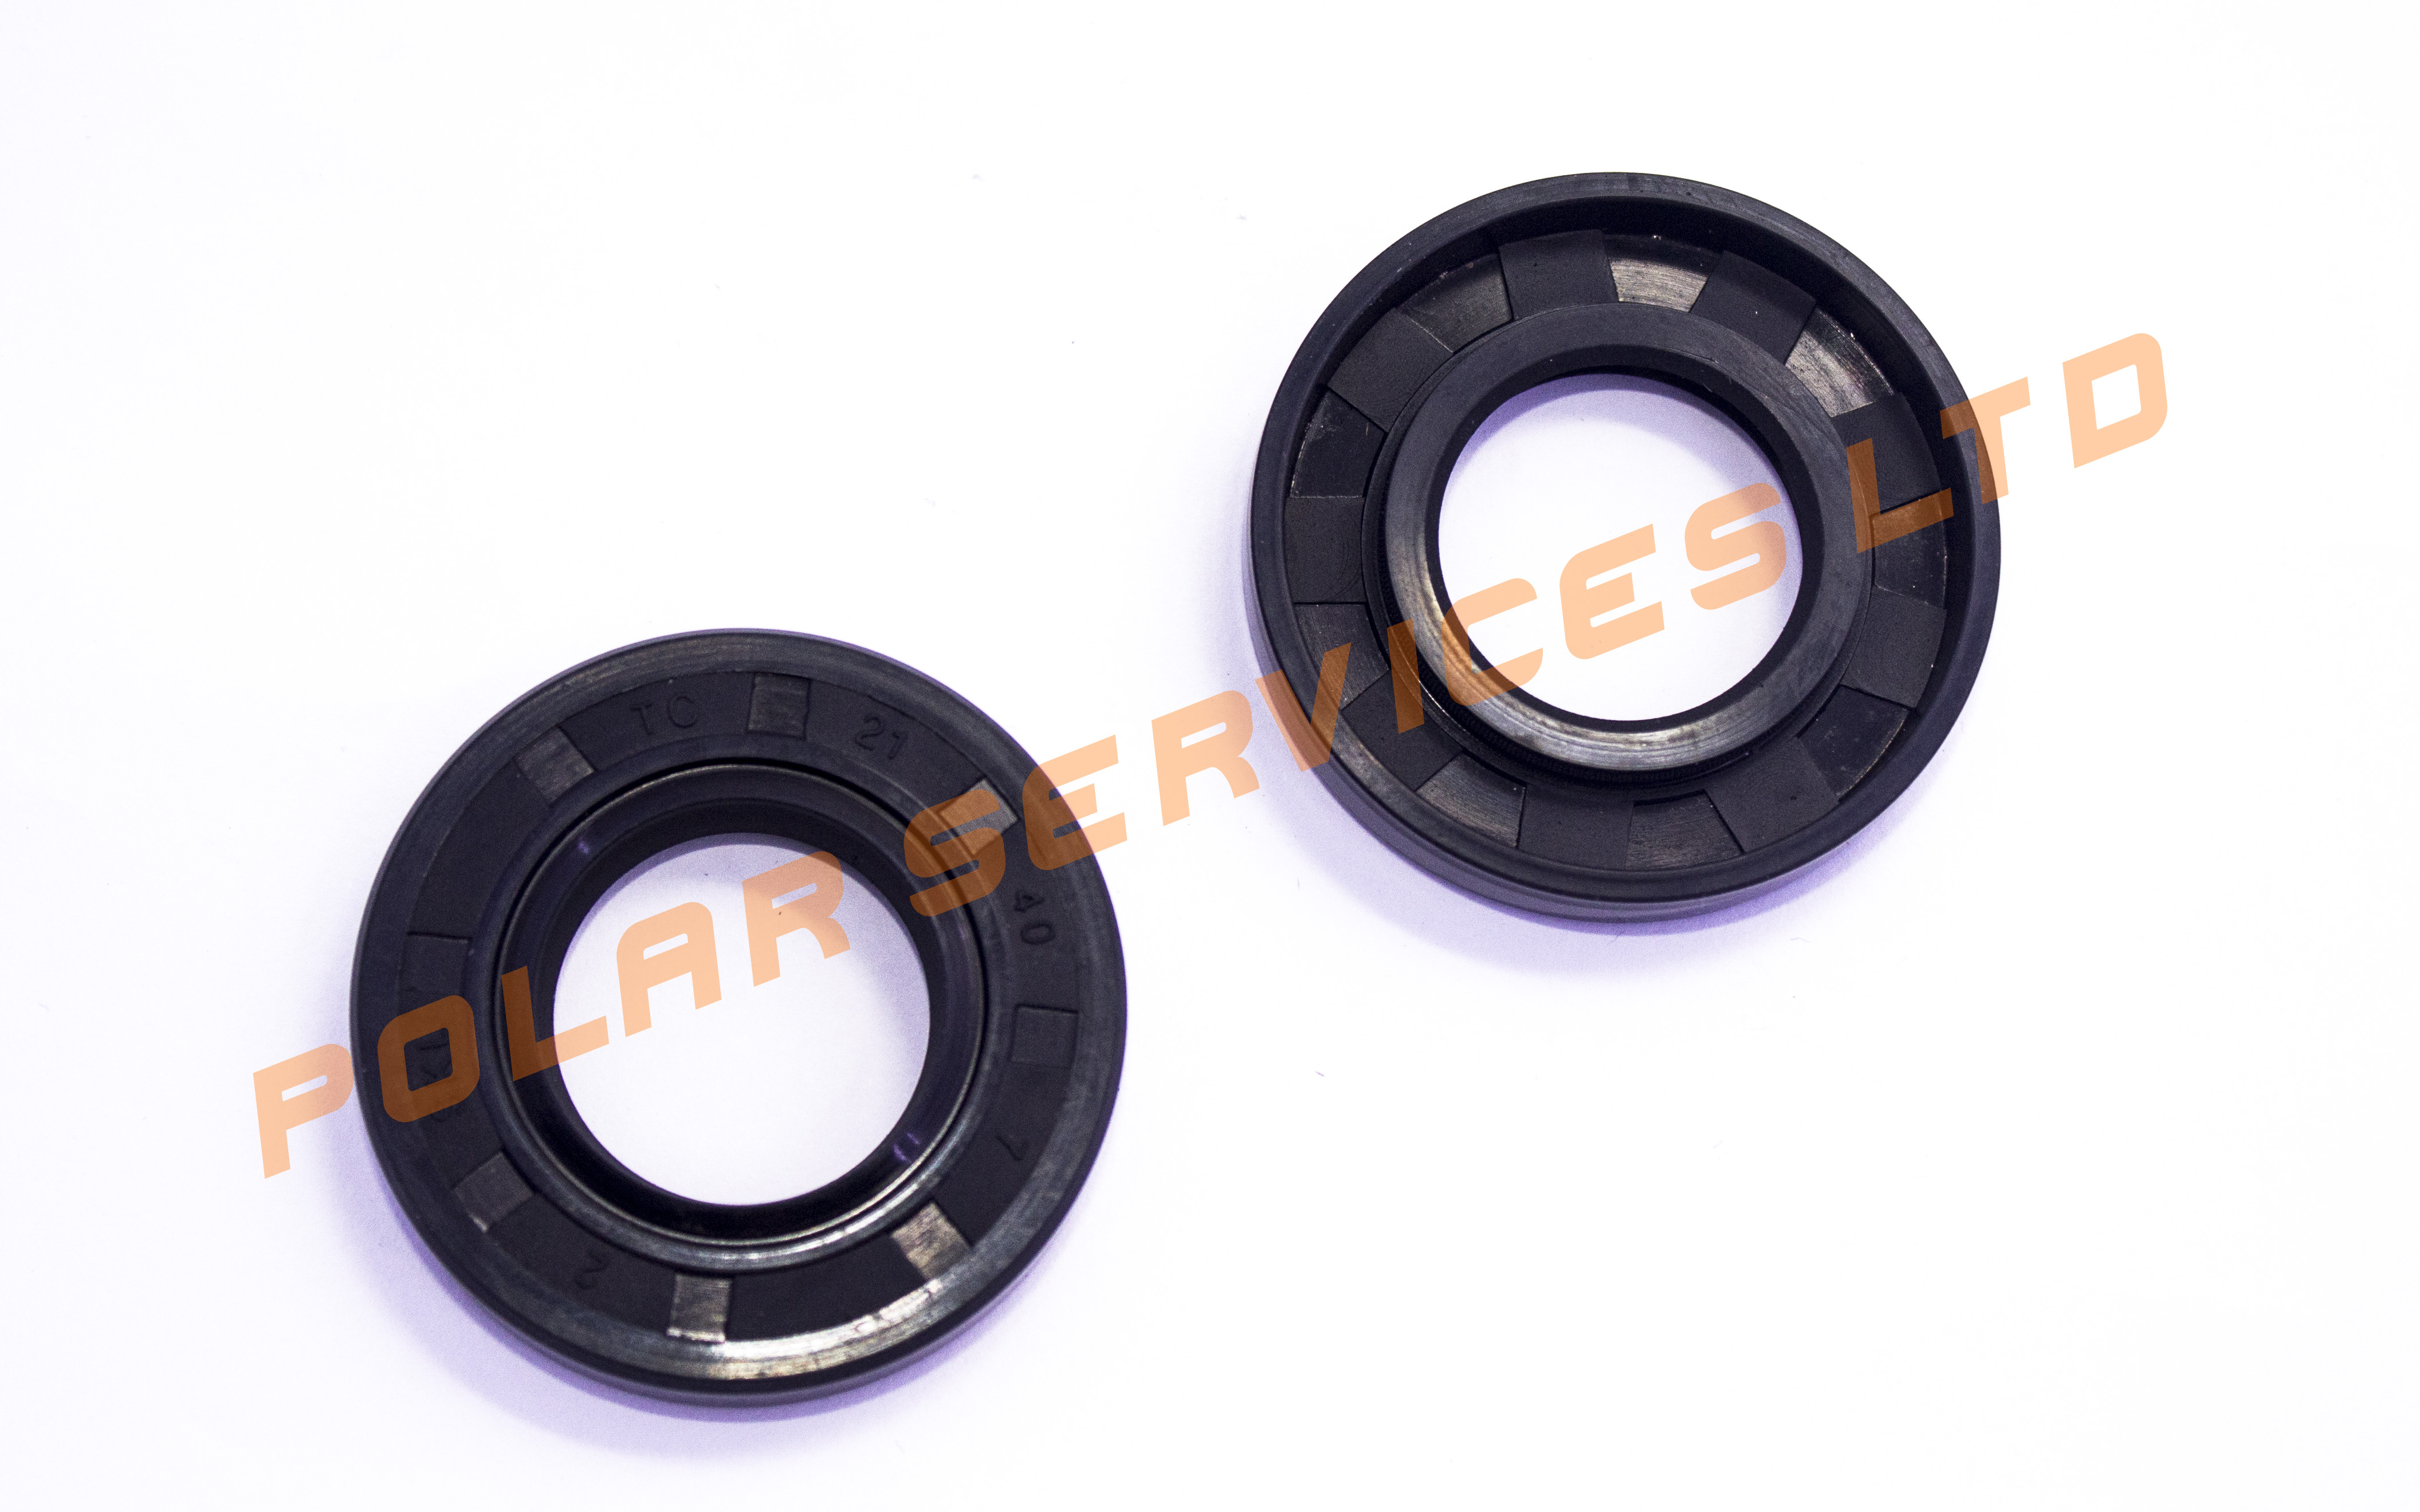 WASHING MACHINE BEARING SEAL 21 X 40 X 7 ARDO 651029840 Malta, 								Washing Machine Malta, Polar Services LTD Malta Malta